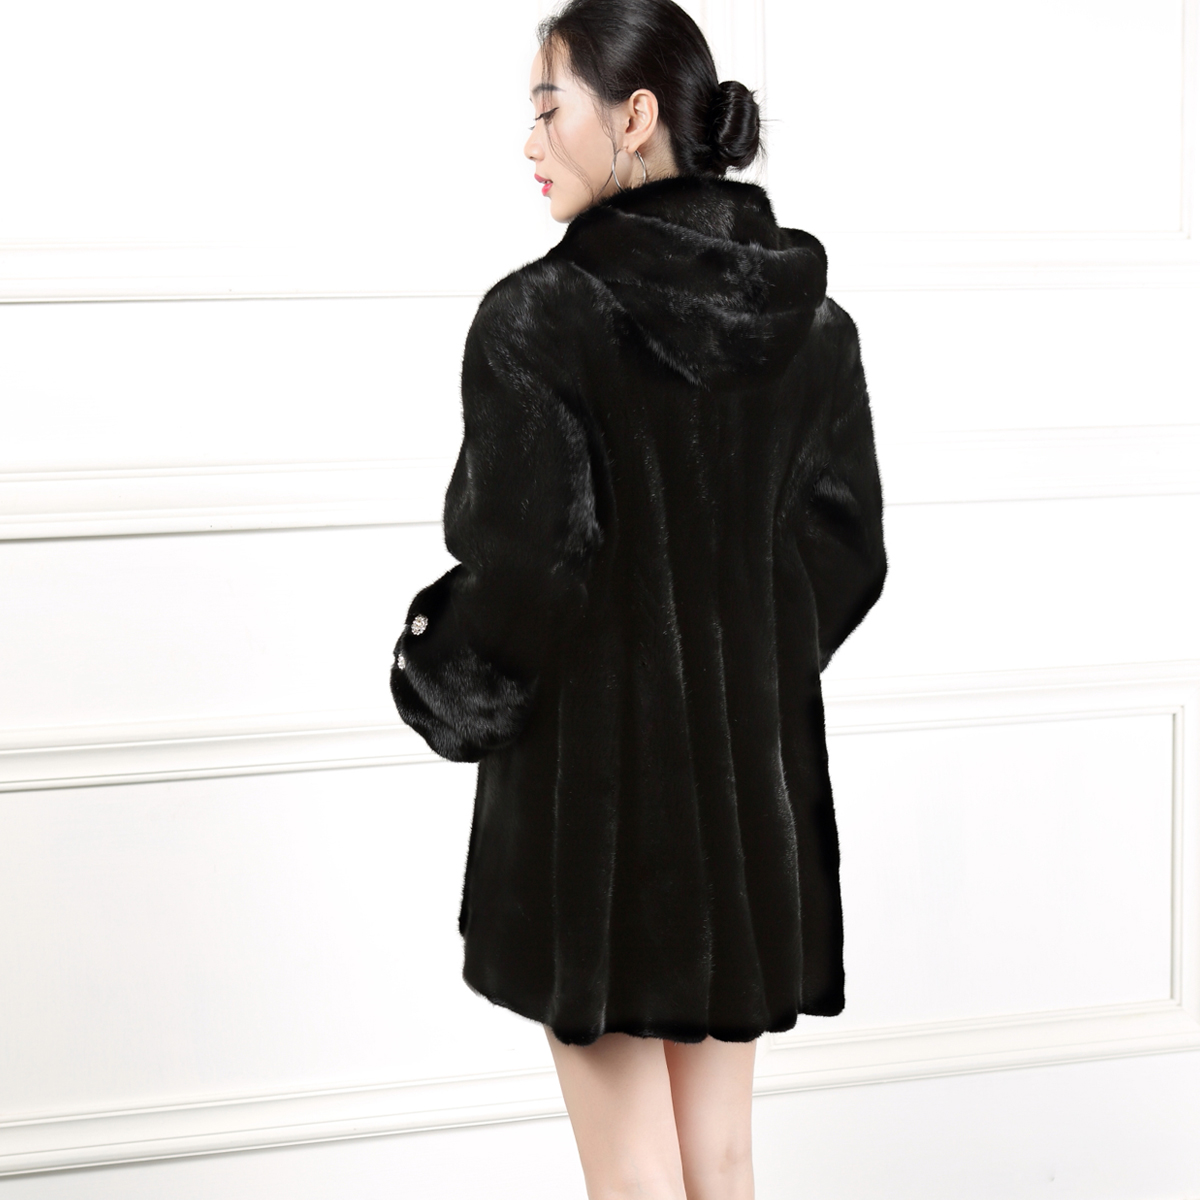 New imported mink fur coat for womens middle and long mink fur coat for womens waistline showing thin, hooded black